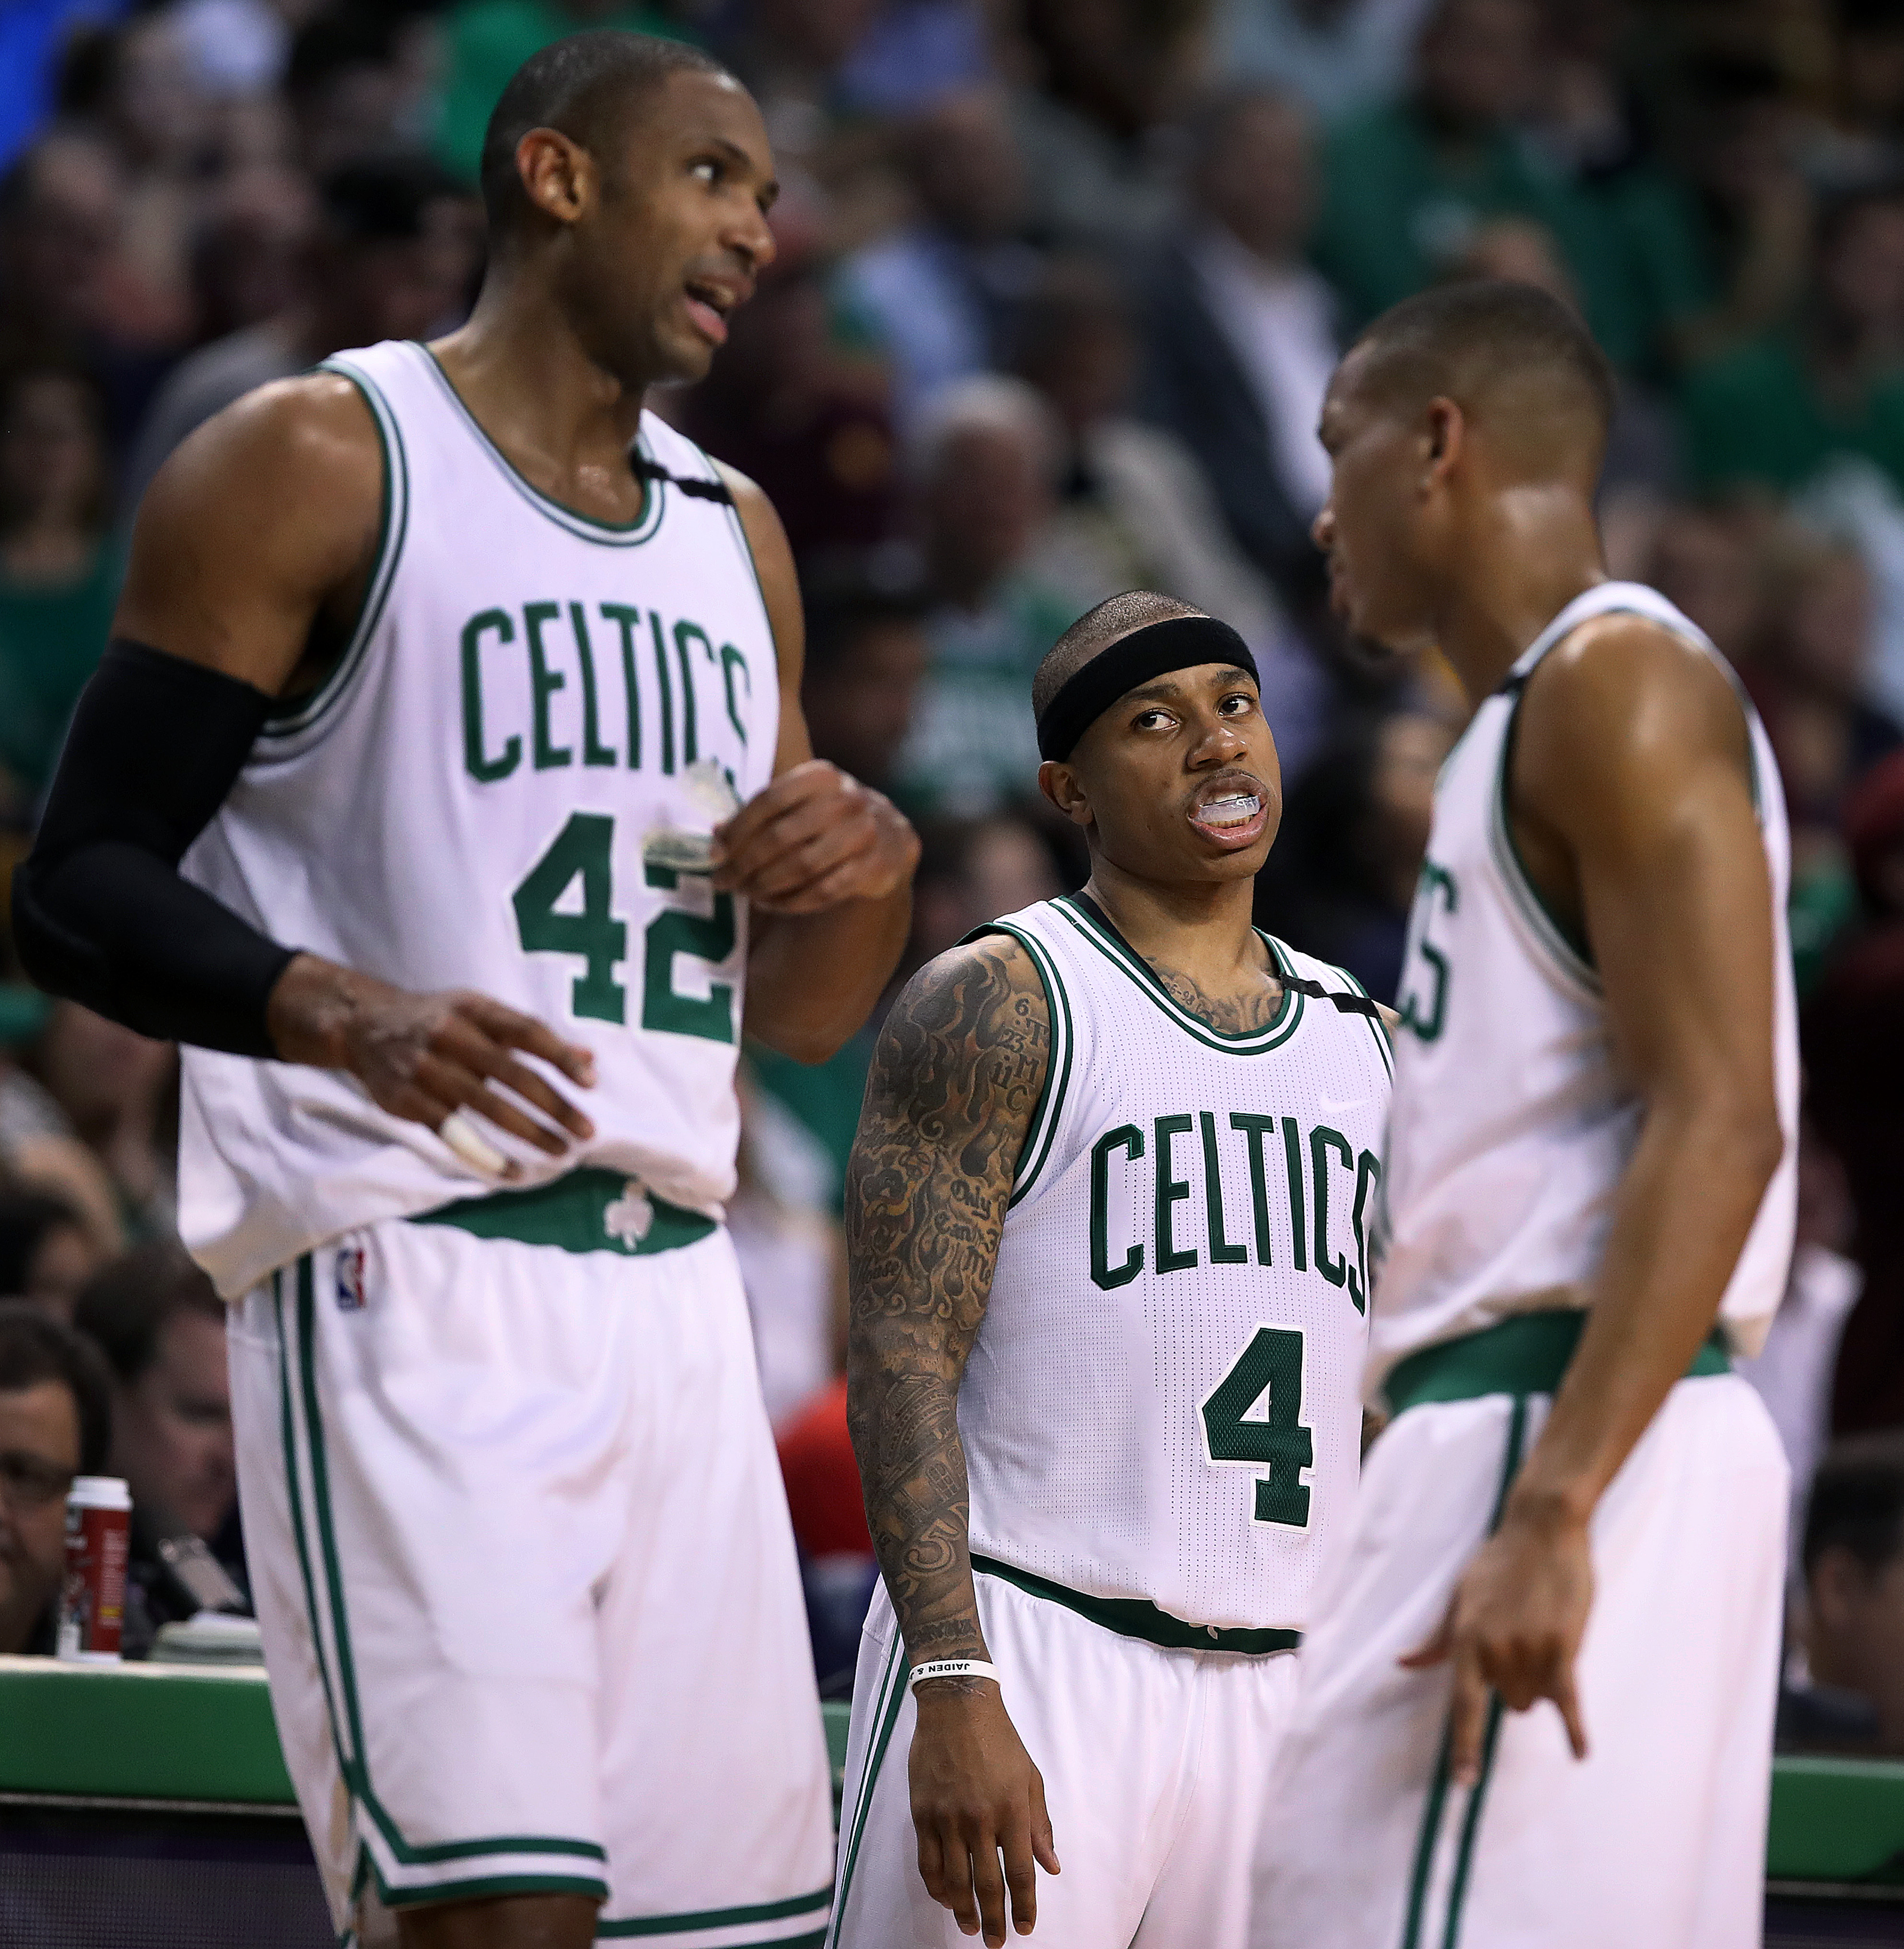 684572738-nba-eastern-conf-finals-cleveland-cavaliers-vs-boston-celtics-at-td-garden.jpg